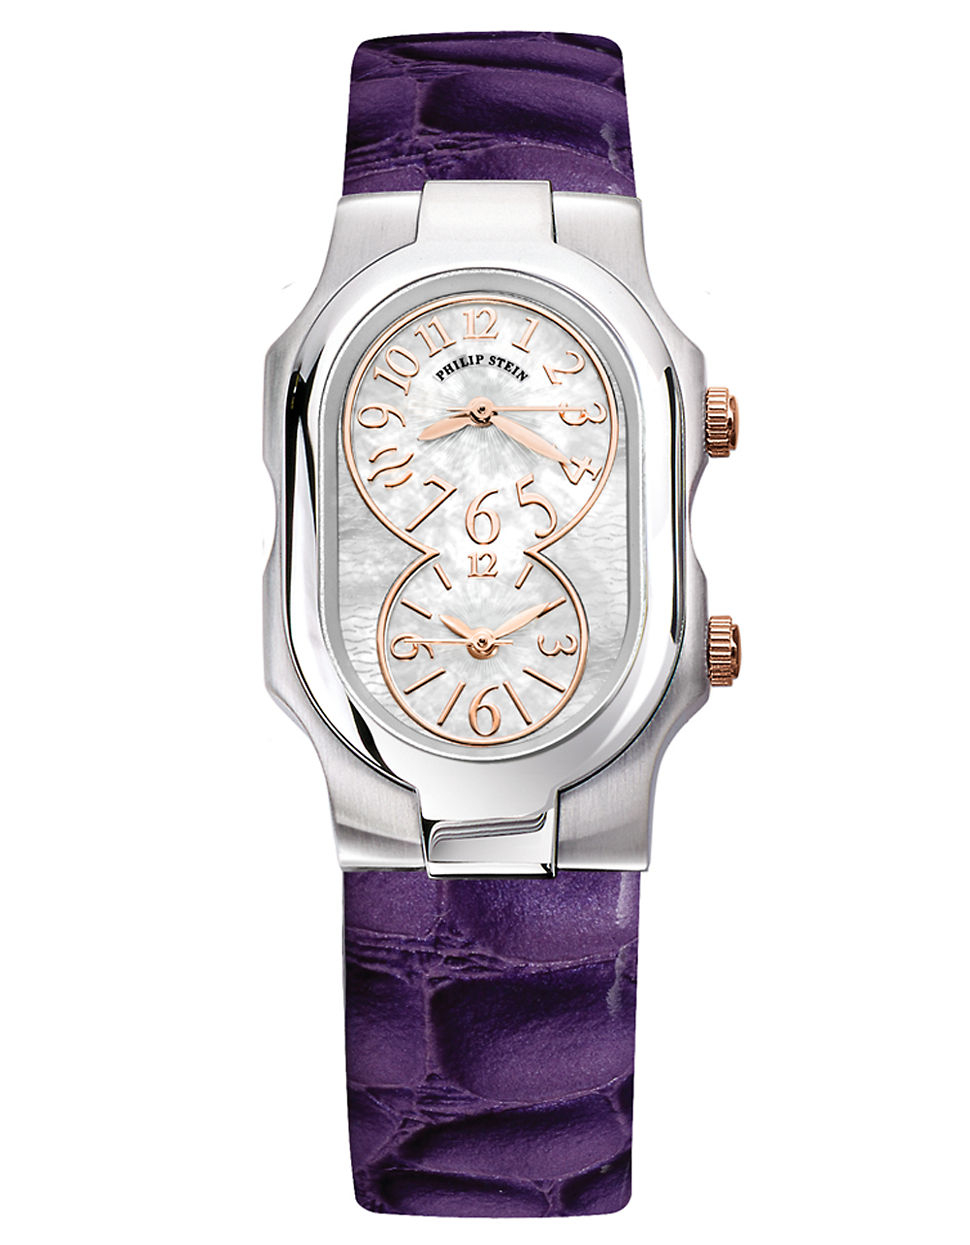 Philip stein ladies signature stainless steel dual time zone watch with leather strap in purple for Violet leather strap watch